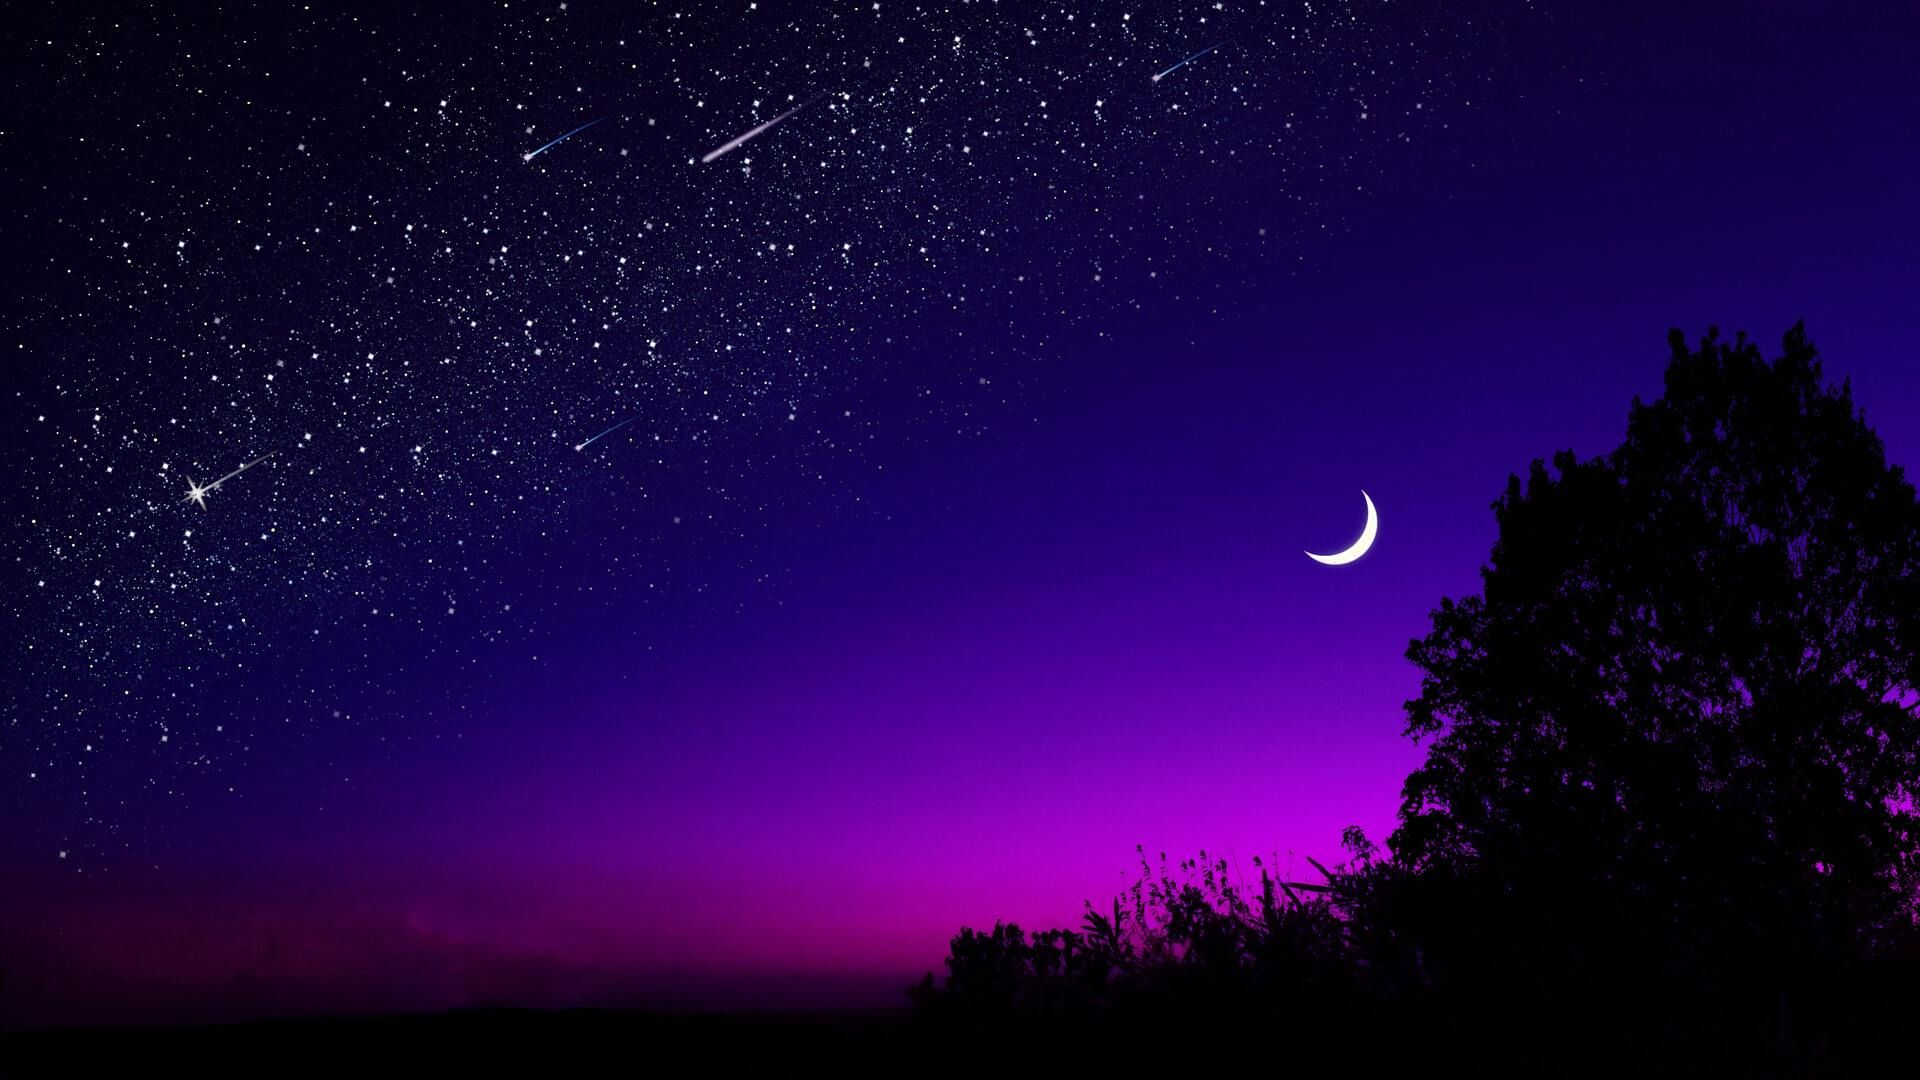 1920x1080 Dark Night Beautiful Sky Laptop Full Hd 1080p Hd Sky Night Dark Wallpaper Beautiful W In 2020 Night Sky Wallpaper Beautiful Wallpaper Hd Purple Sky